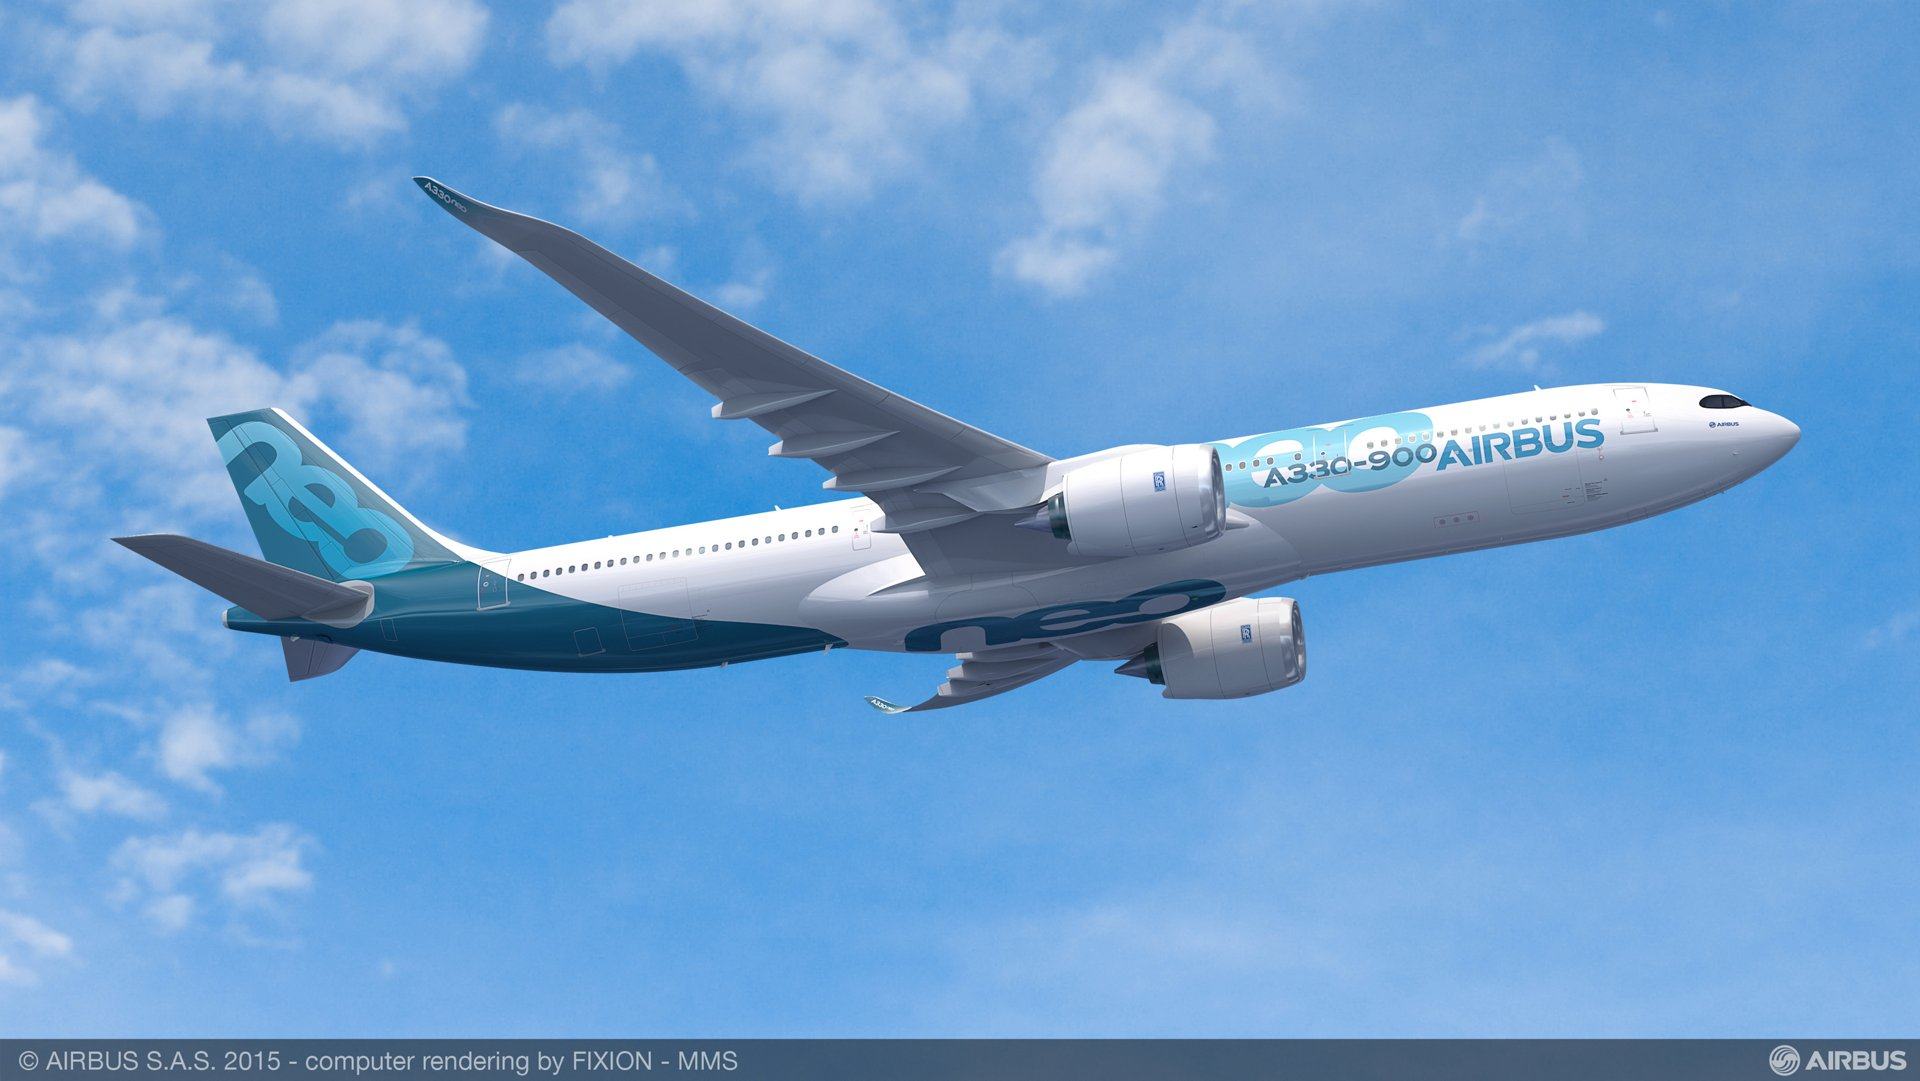 Launched by Airbus in July 2014, the A330-900 is an important member of the company's modern, market-leading product line of widebody aircraft